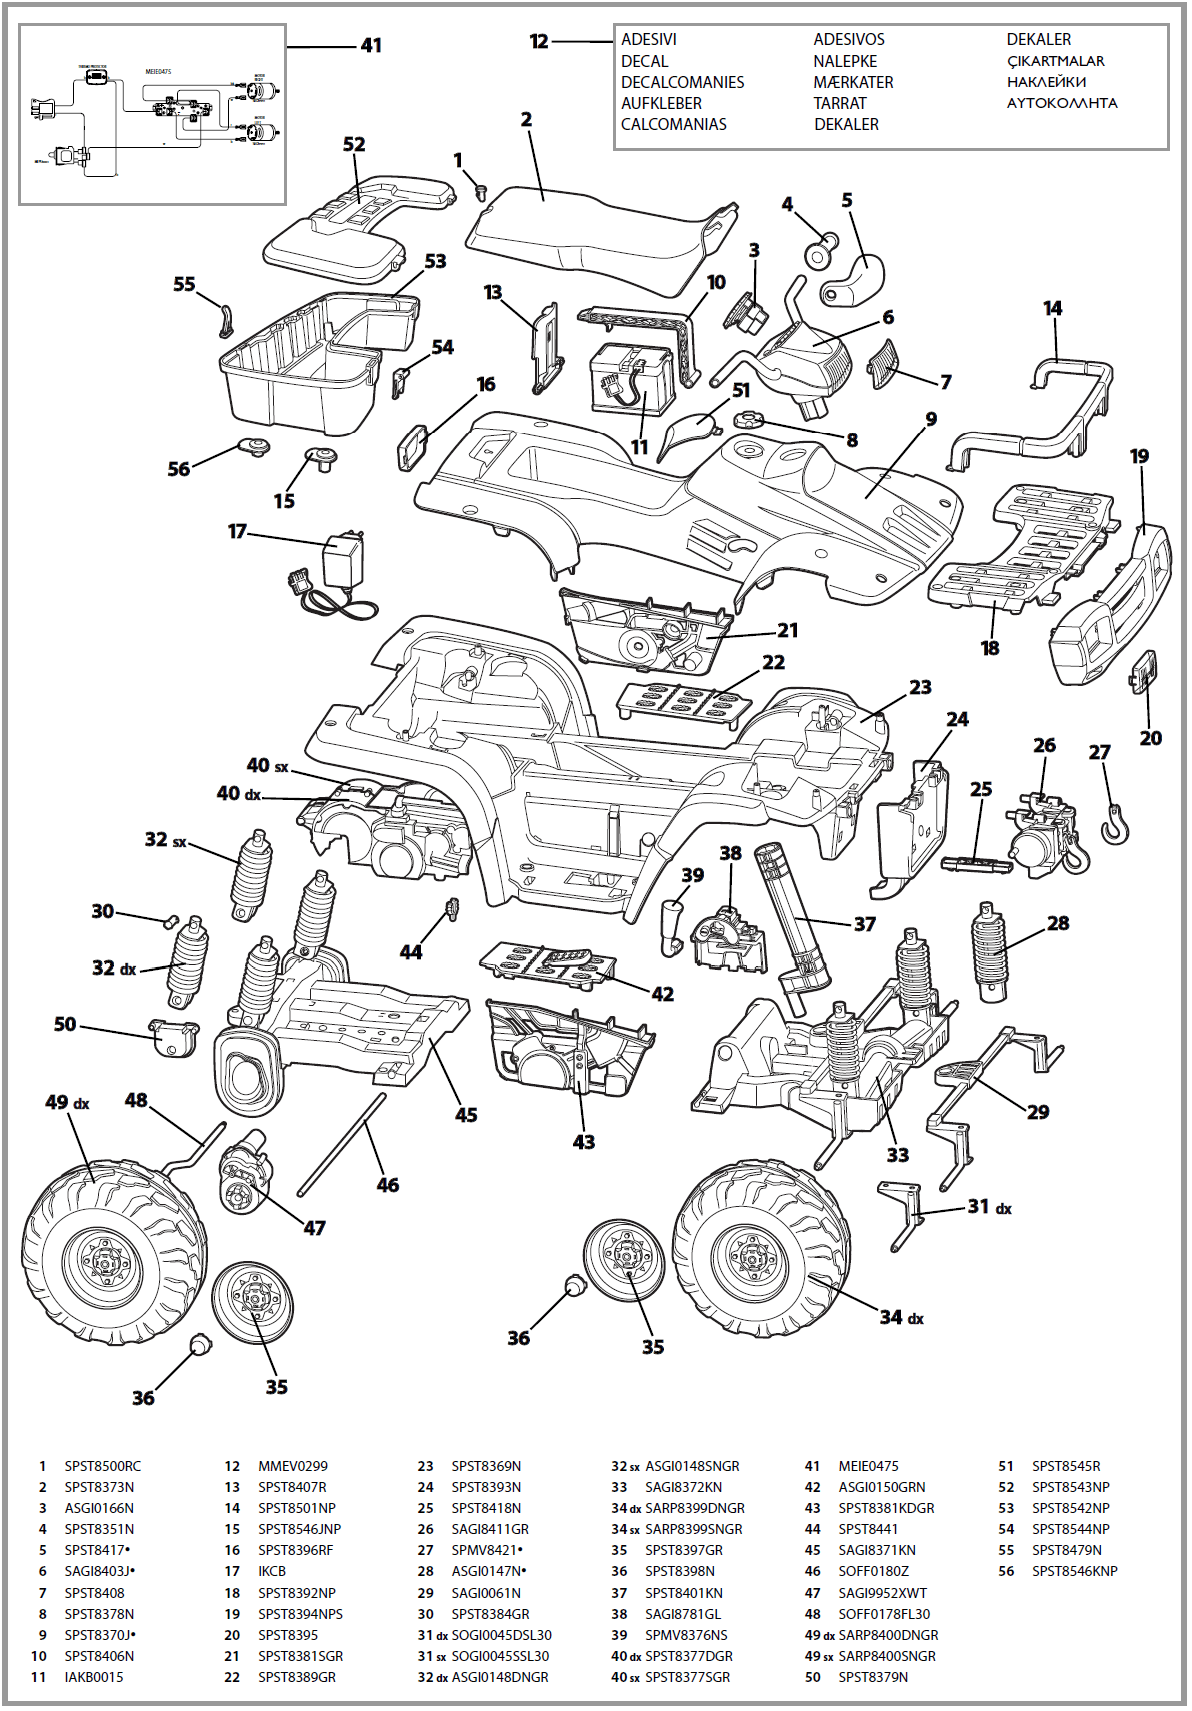 Warn Winch 8274 Wiring Diagram Pdf Warn Just Another